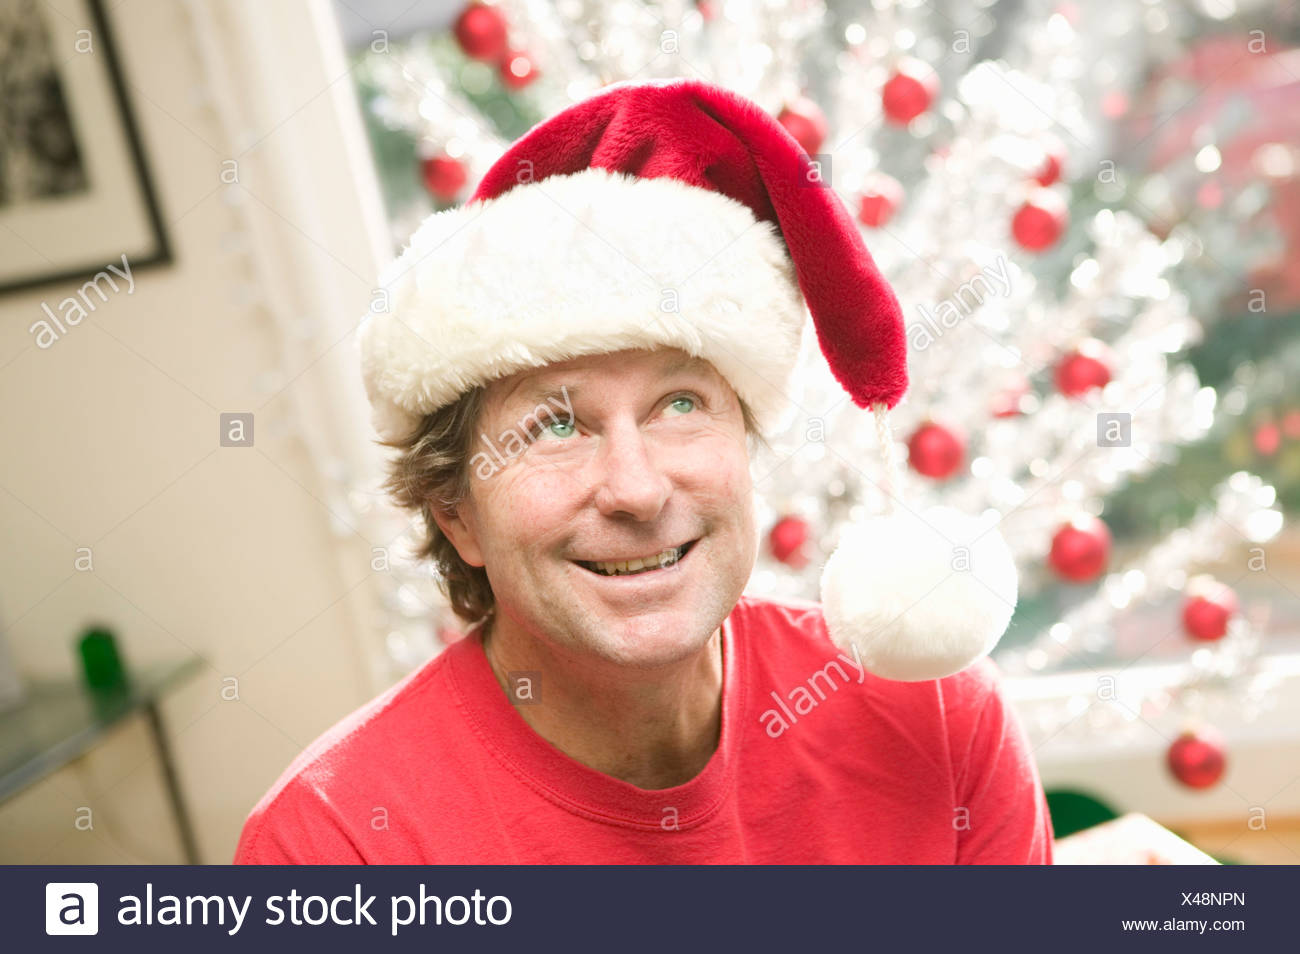 Portrait of playful man at Christmastime - Stock Image